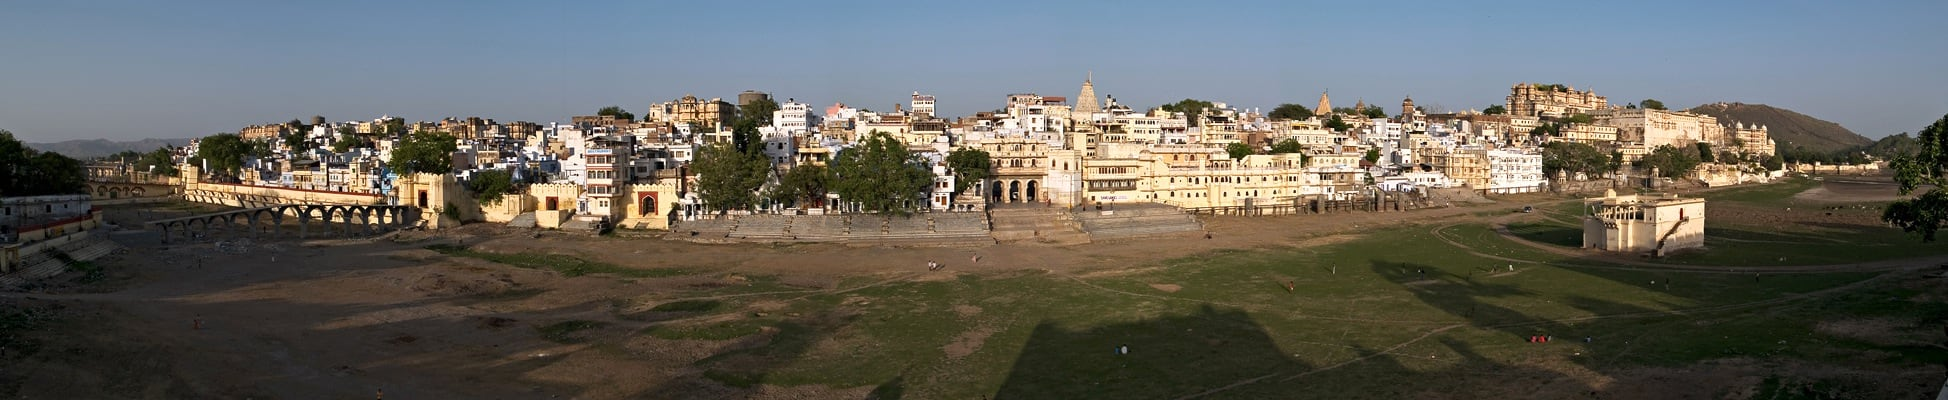 udaipur in dry season